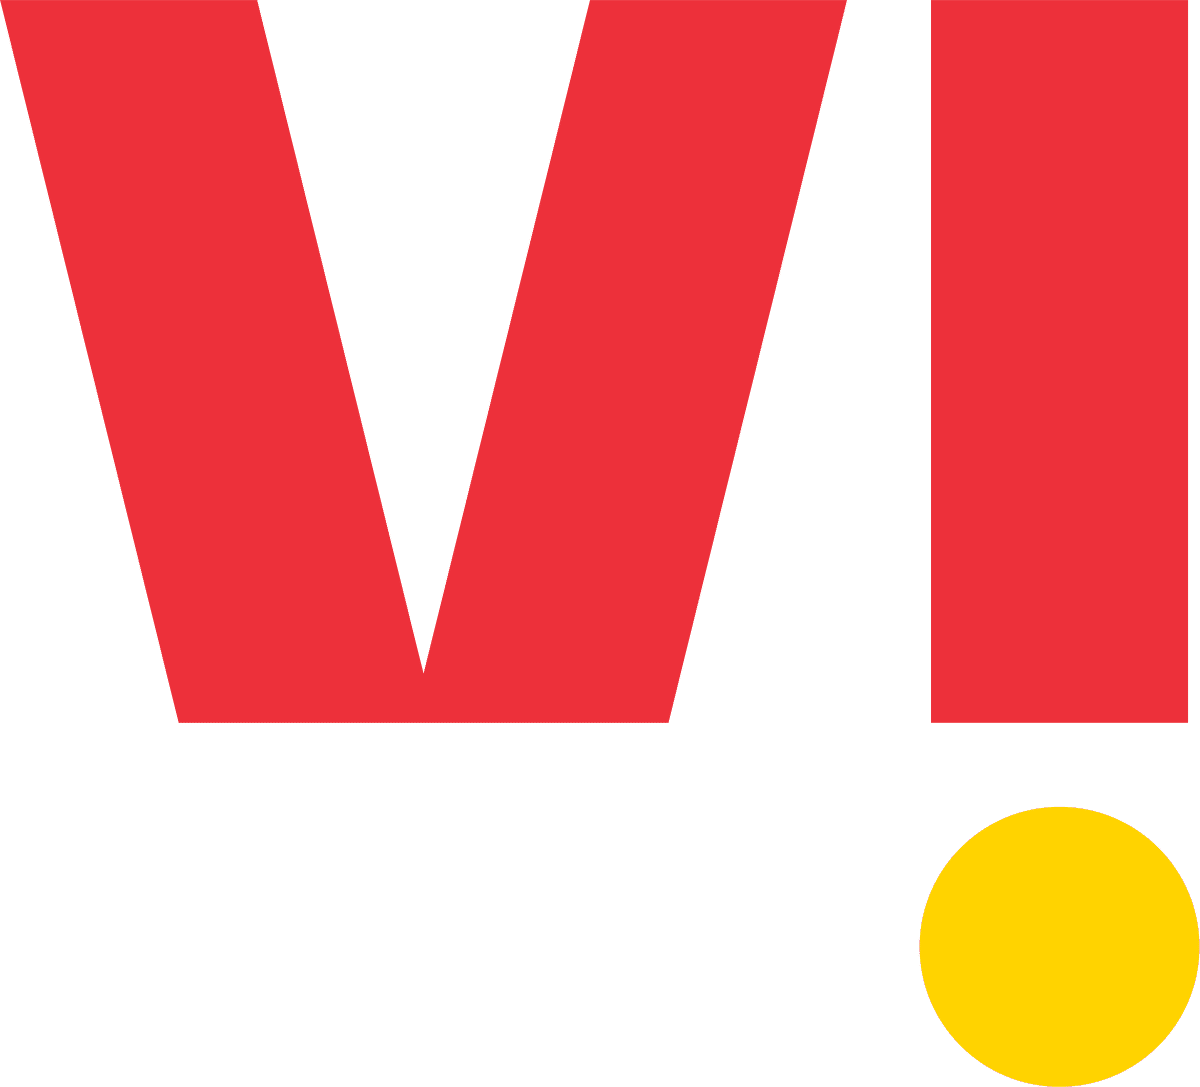 Vi will reportedly increase tariffs by 15-20 percent soon